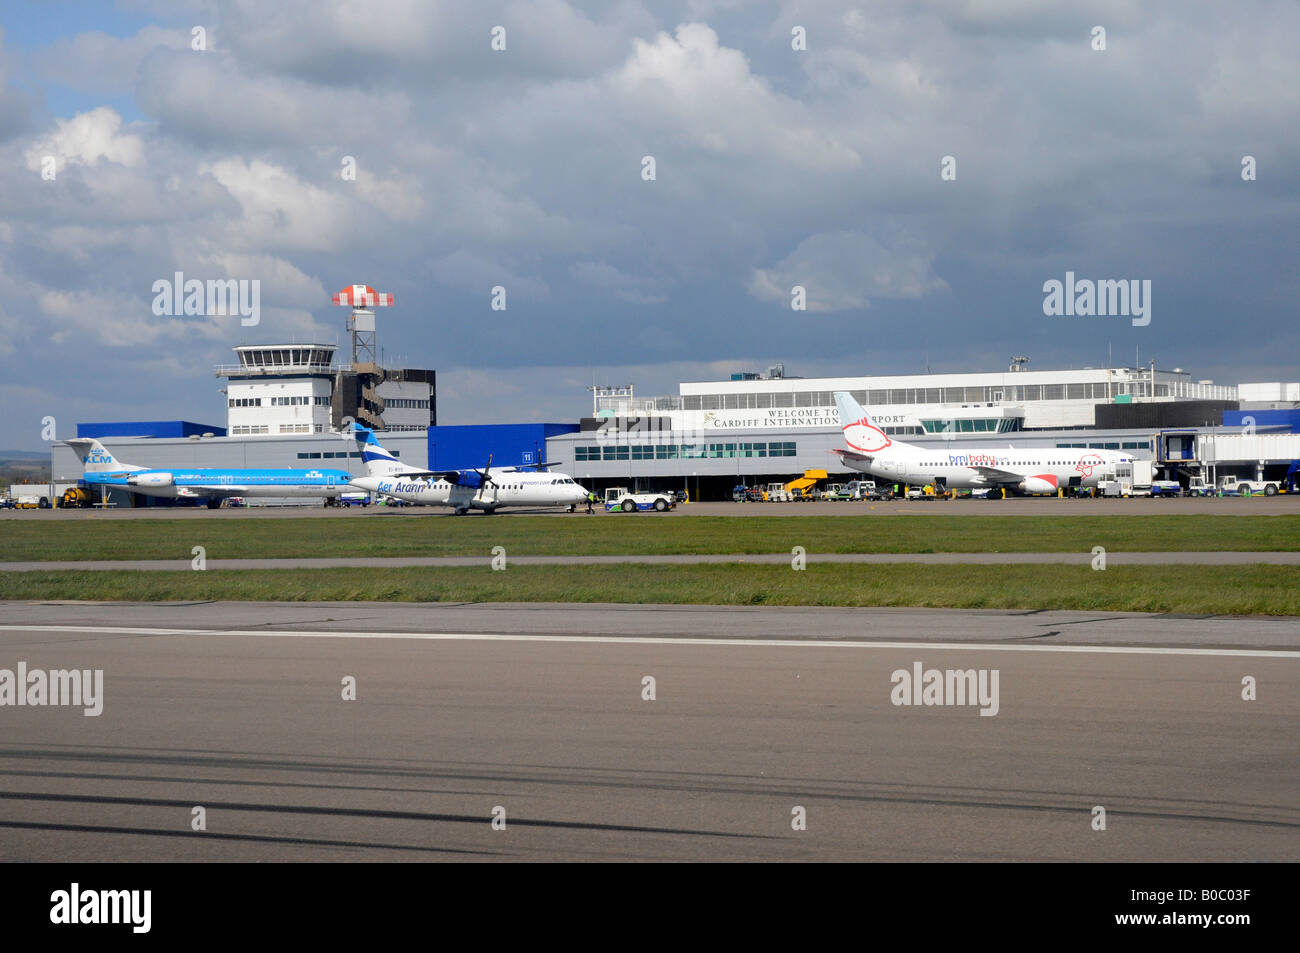 Cardiff Airport, Wales - Stock Image